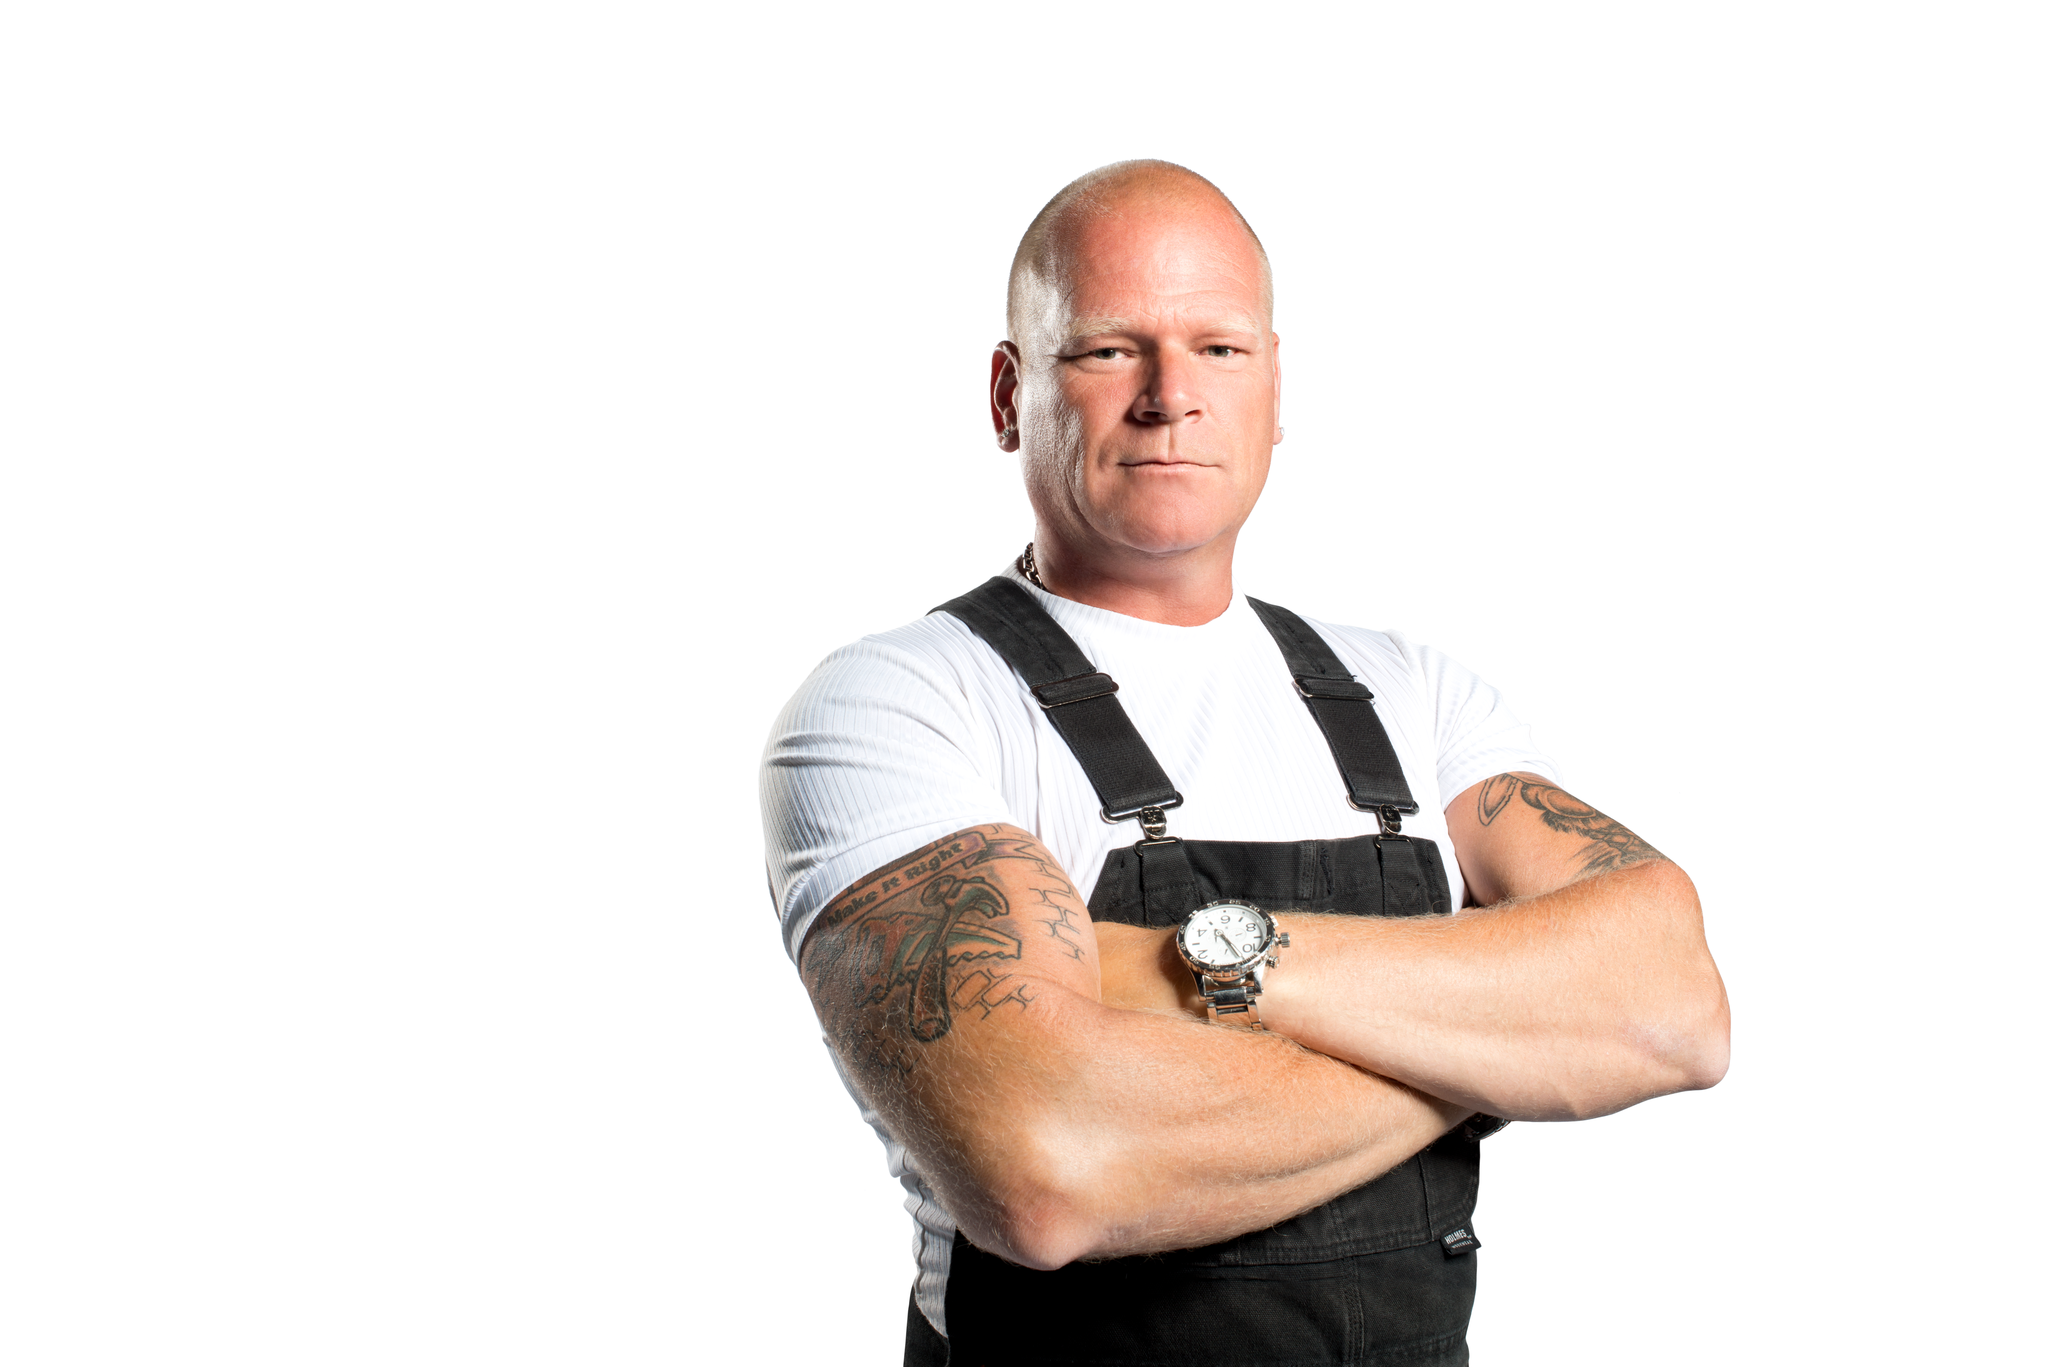 Timber Block and Mike Holmes